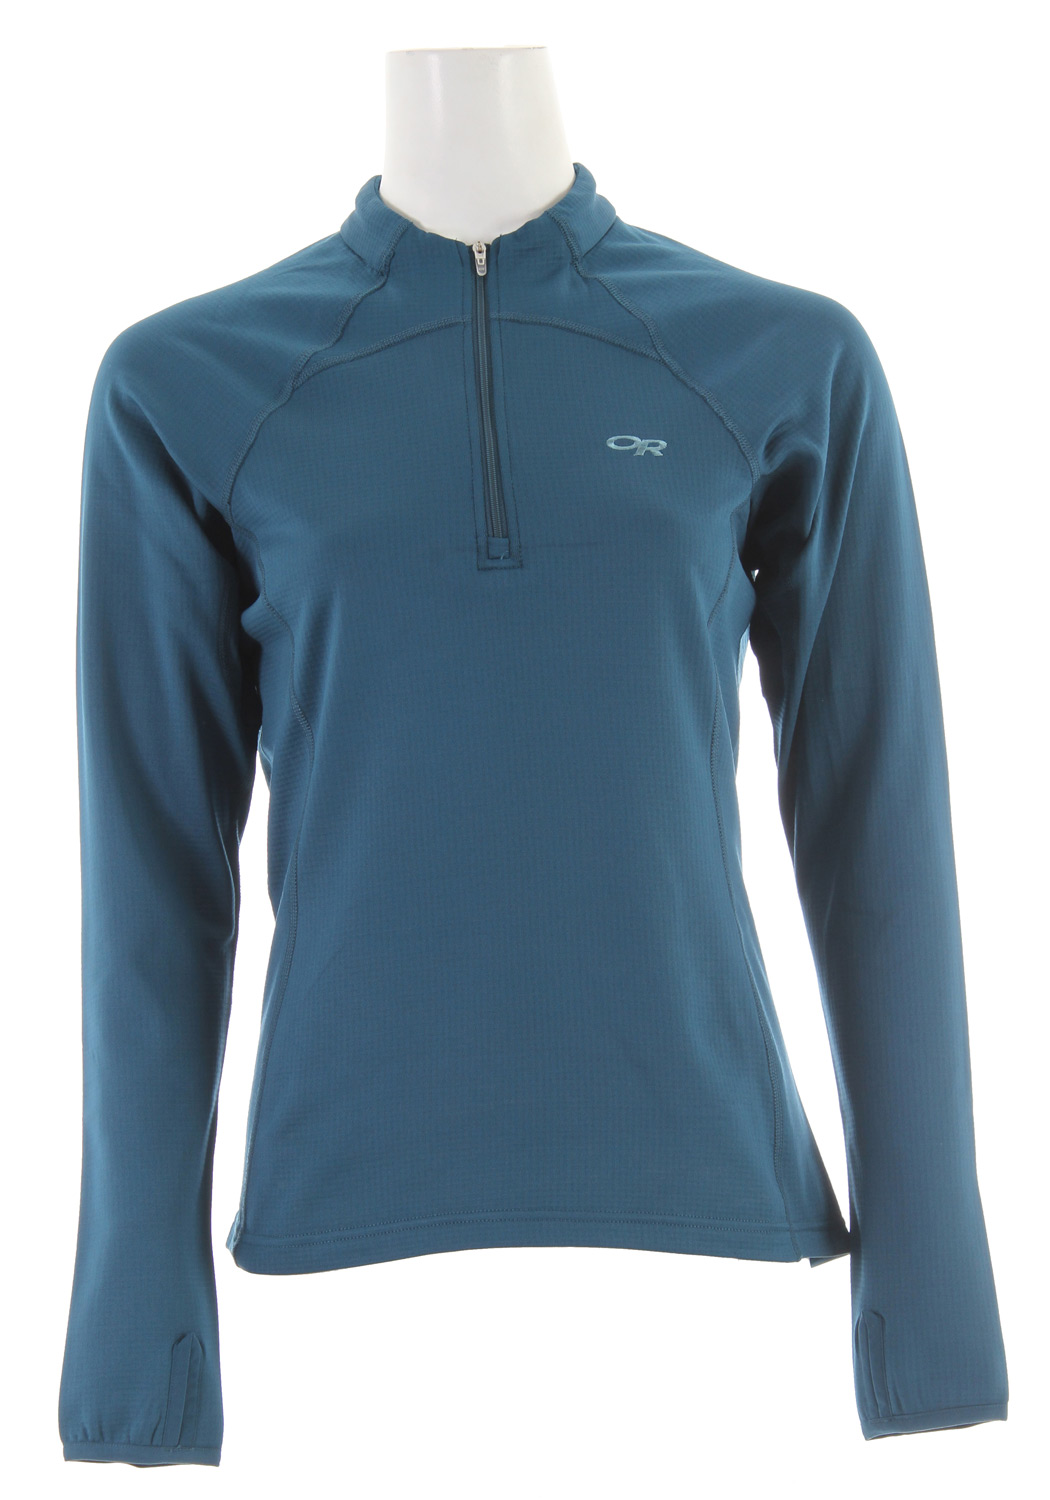 Designed with our new Radiant LT Fleece, this lightweight, wicking zip top is the ideal second layer or base layer. The highly breathable grid fleece pulls moisture from your skin when the ascent amps up the challenge. For greater ventilation, push up the arms and unzip the neck-to-chest zipper to be cooled by the breeze. On days when you need to keep the sun off without getting too hot, the Radiant LT Zip Tip offers light coverage as an outer layer. Key Features of the Outdoor Research Radiant LT Zip Top Fleece Jacket: Radiant LT Fleece u length front zipper Flatlock stitching and wrap-around side seams Thumb loops on cuffs Lycra binding on thumb loops and cuffs - $41.95